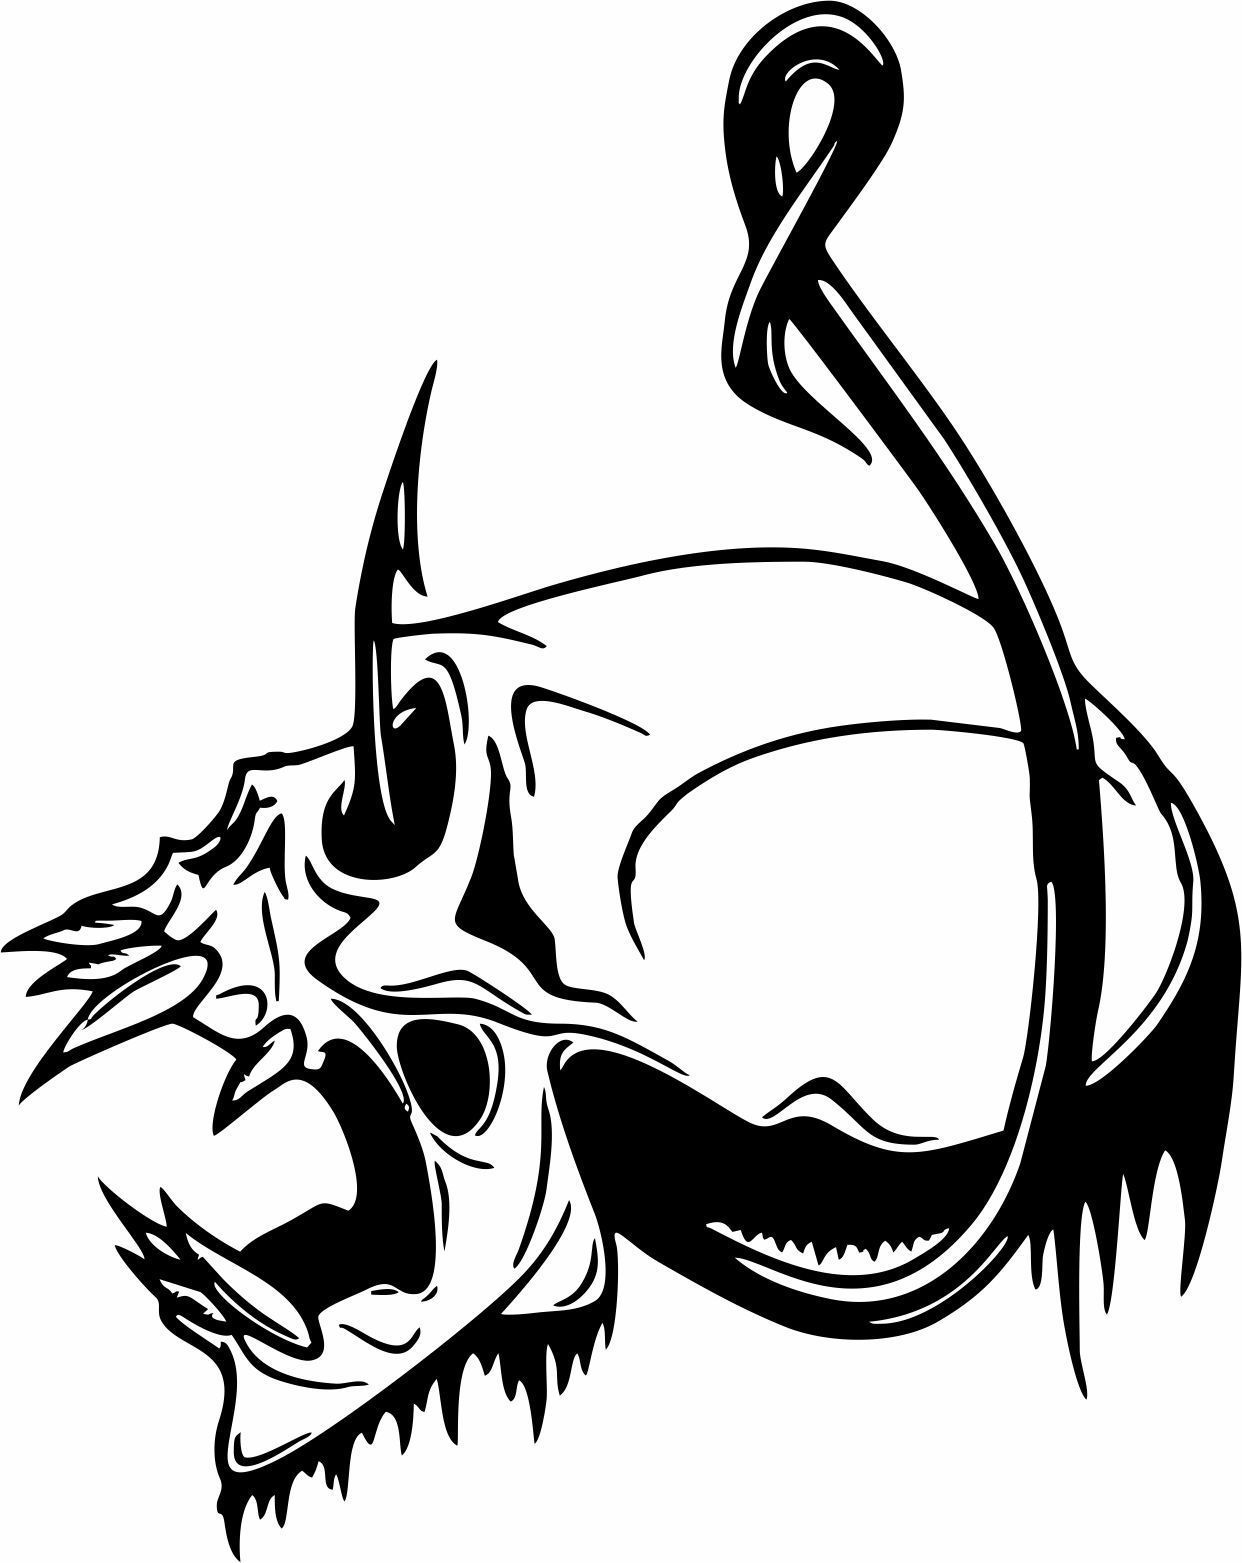 Fish Reaper Skull Fishing Rod Reel Car Boat Truck Window Vinyl - Hunting decals for trucksonestate rack attack truck van window vinyl decal sticker